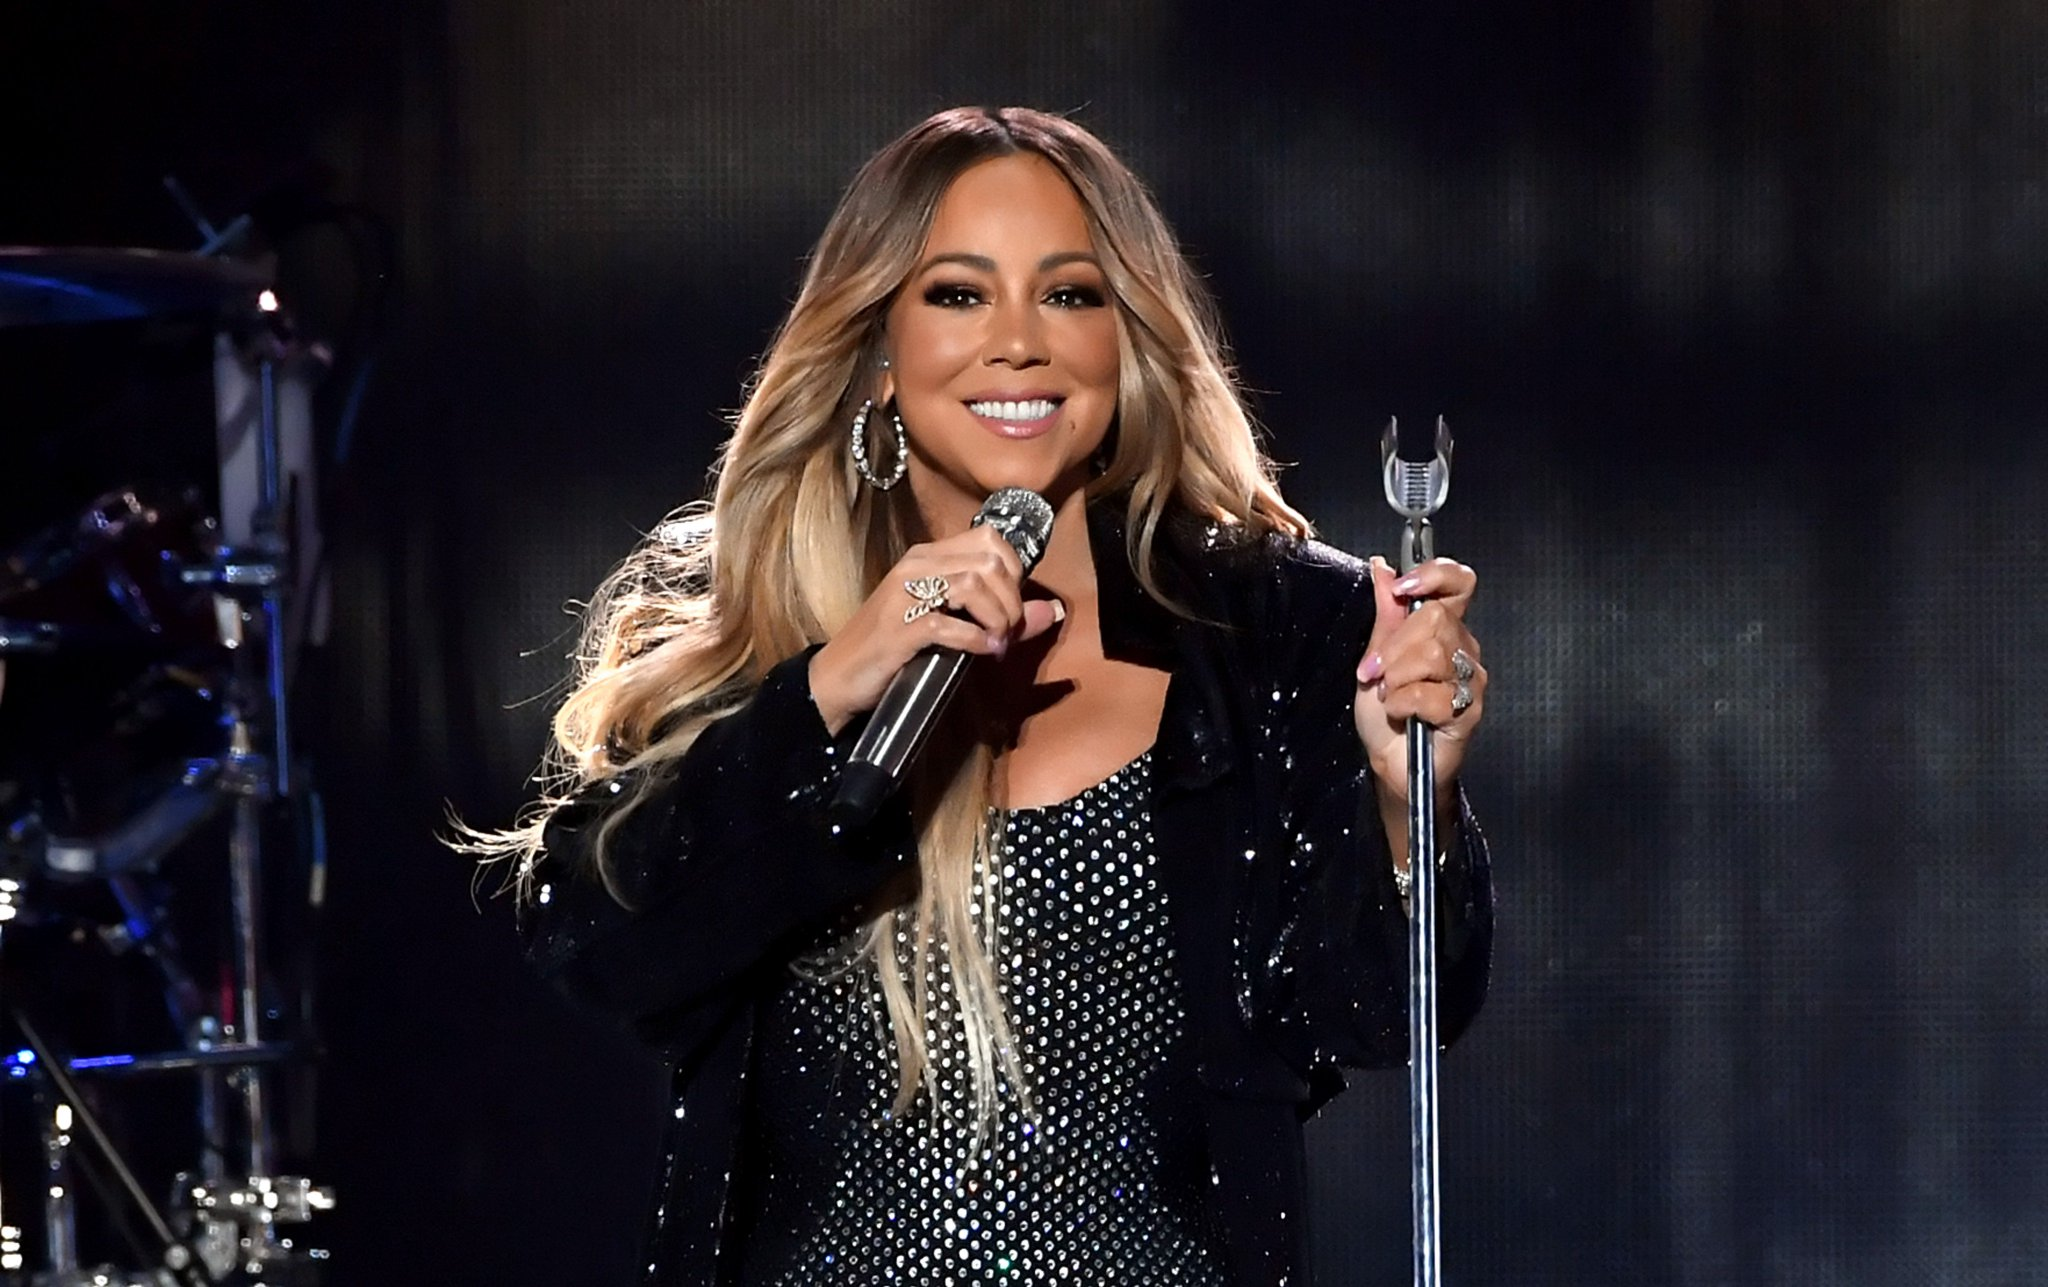 .@MariahCarey will perform at the 2018 American Music Awards. https://t.co/Oz4RwAMOsC https://t.co/KpDJTBWu76